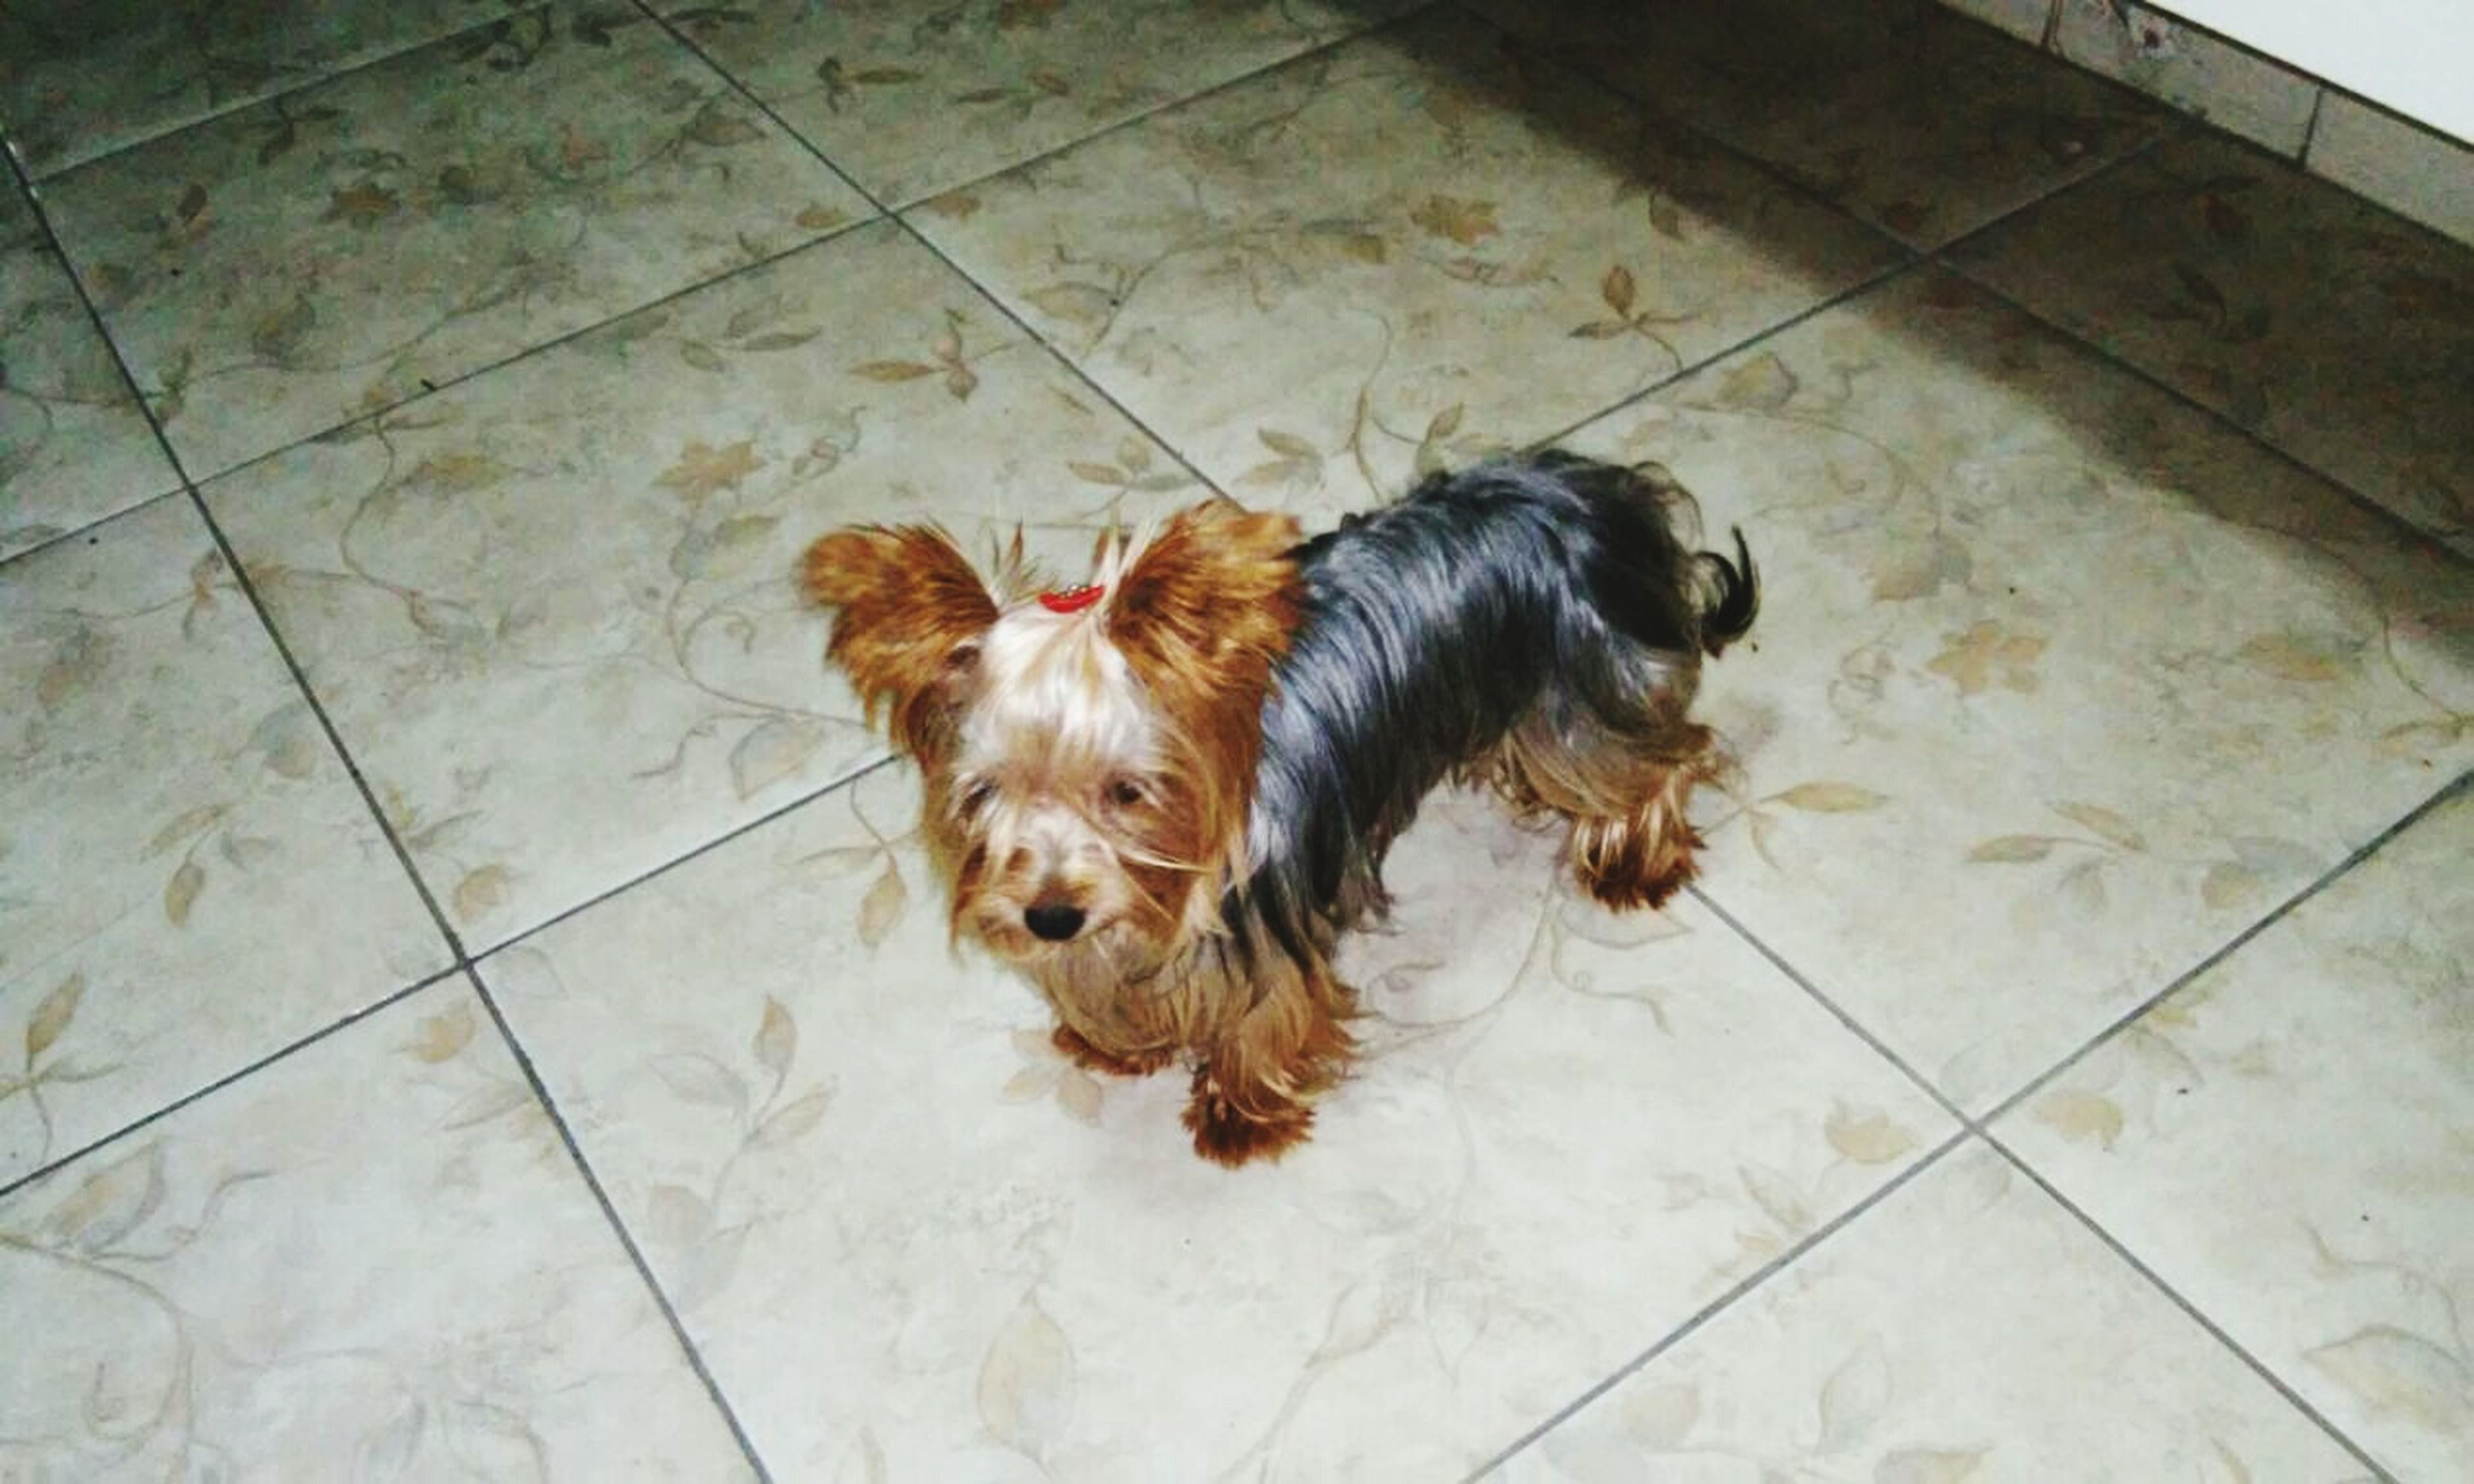 domestic animals, animal themes, pets, mammal, one animal, dog, high angle view, tiled floor, flooring, full length, relaxation, indoors, animal hair, sitting, no people, floor, lying down, paving stone, zoology, black color